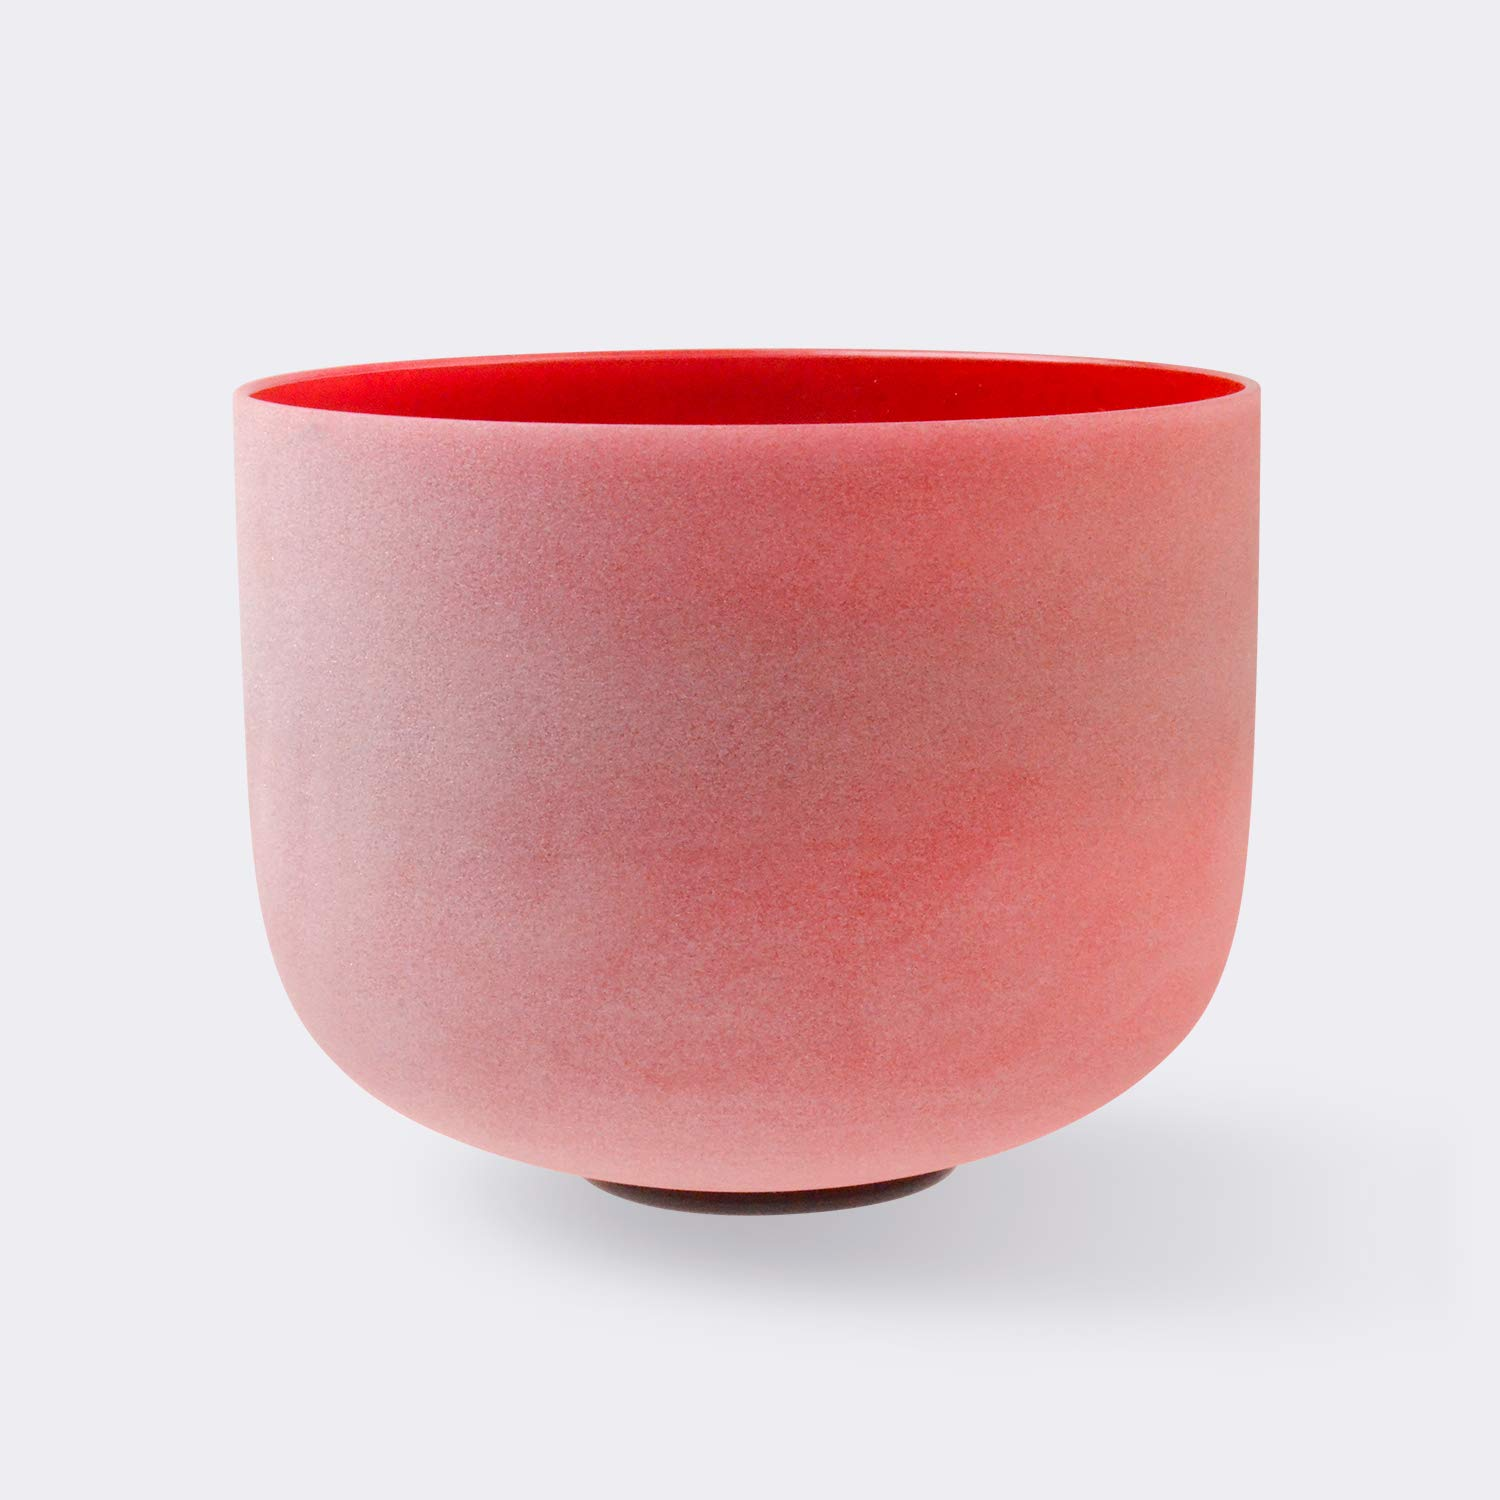 TOPFUND Singing Bowls C Note Crystal Singing Bowl Root Chakra Red Color 12 inch (O-Ring and Rubber Mallet Included) by TOPFUND (Image #2)